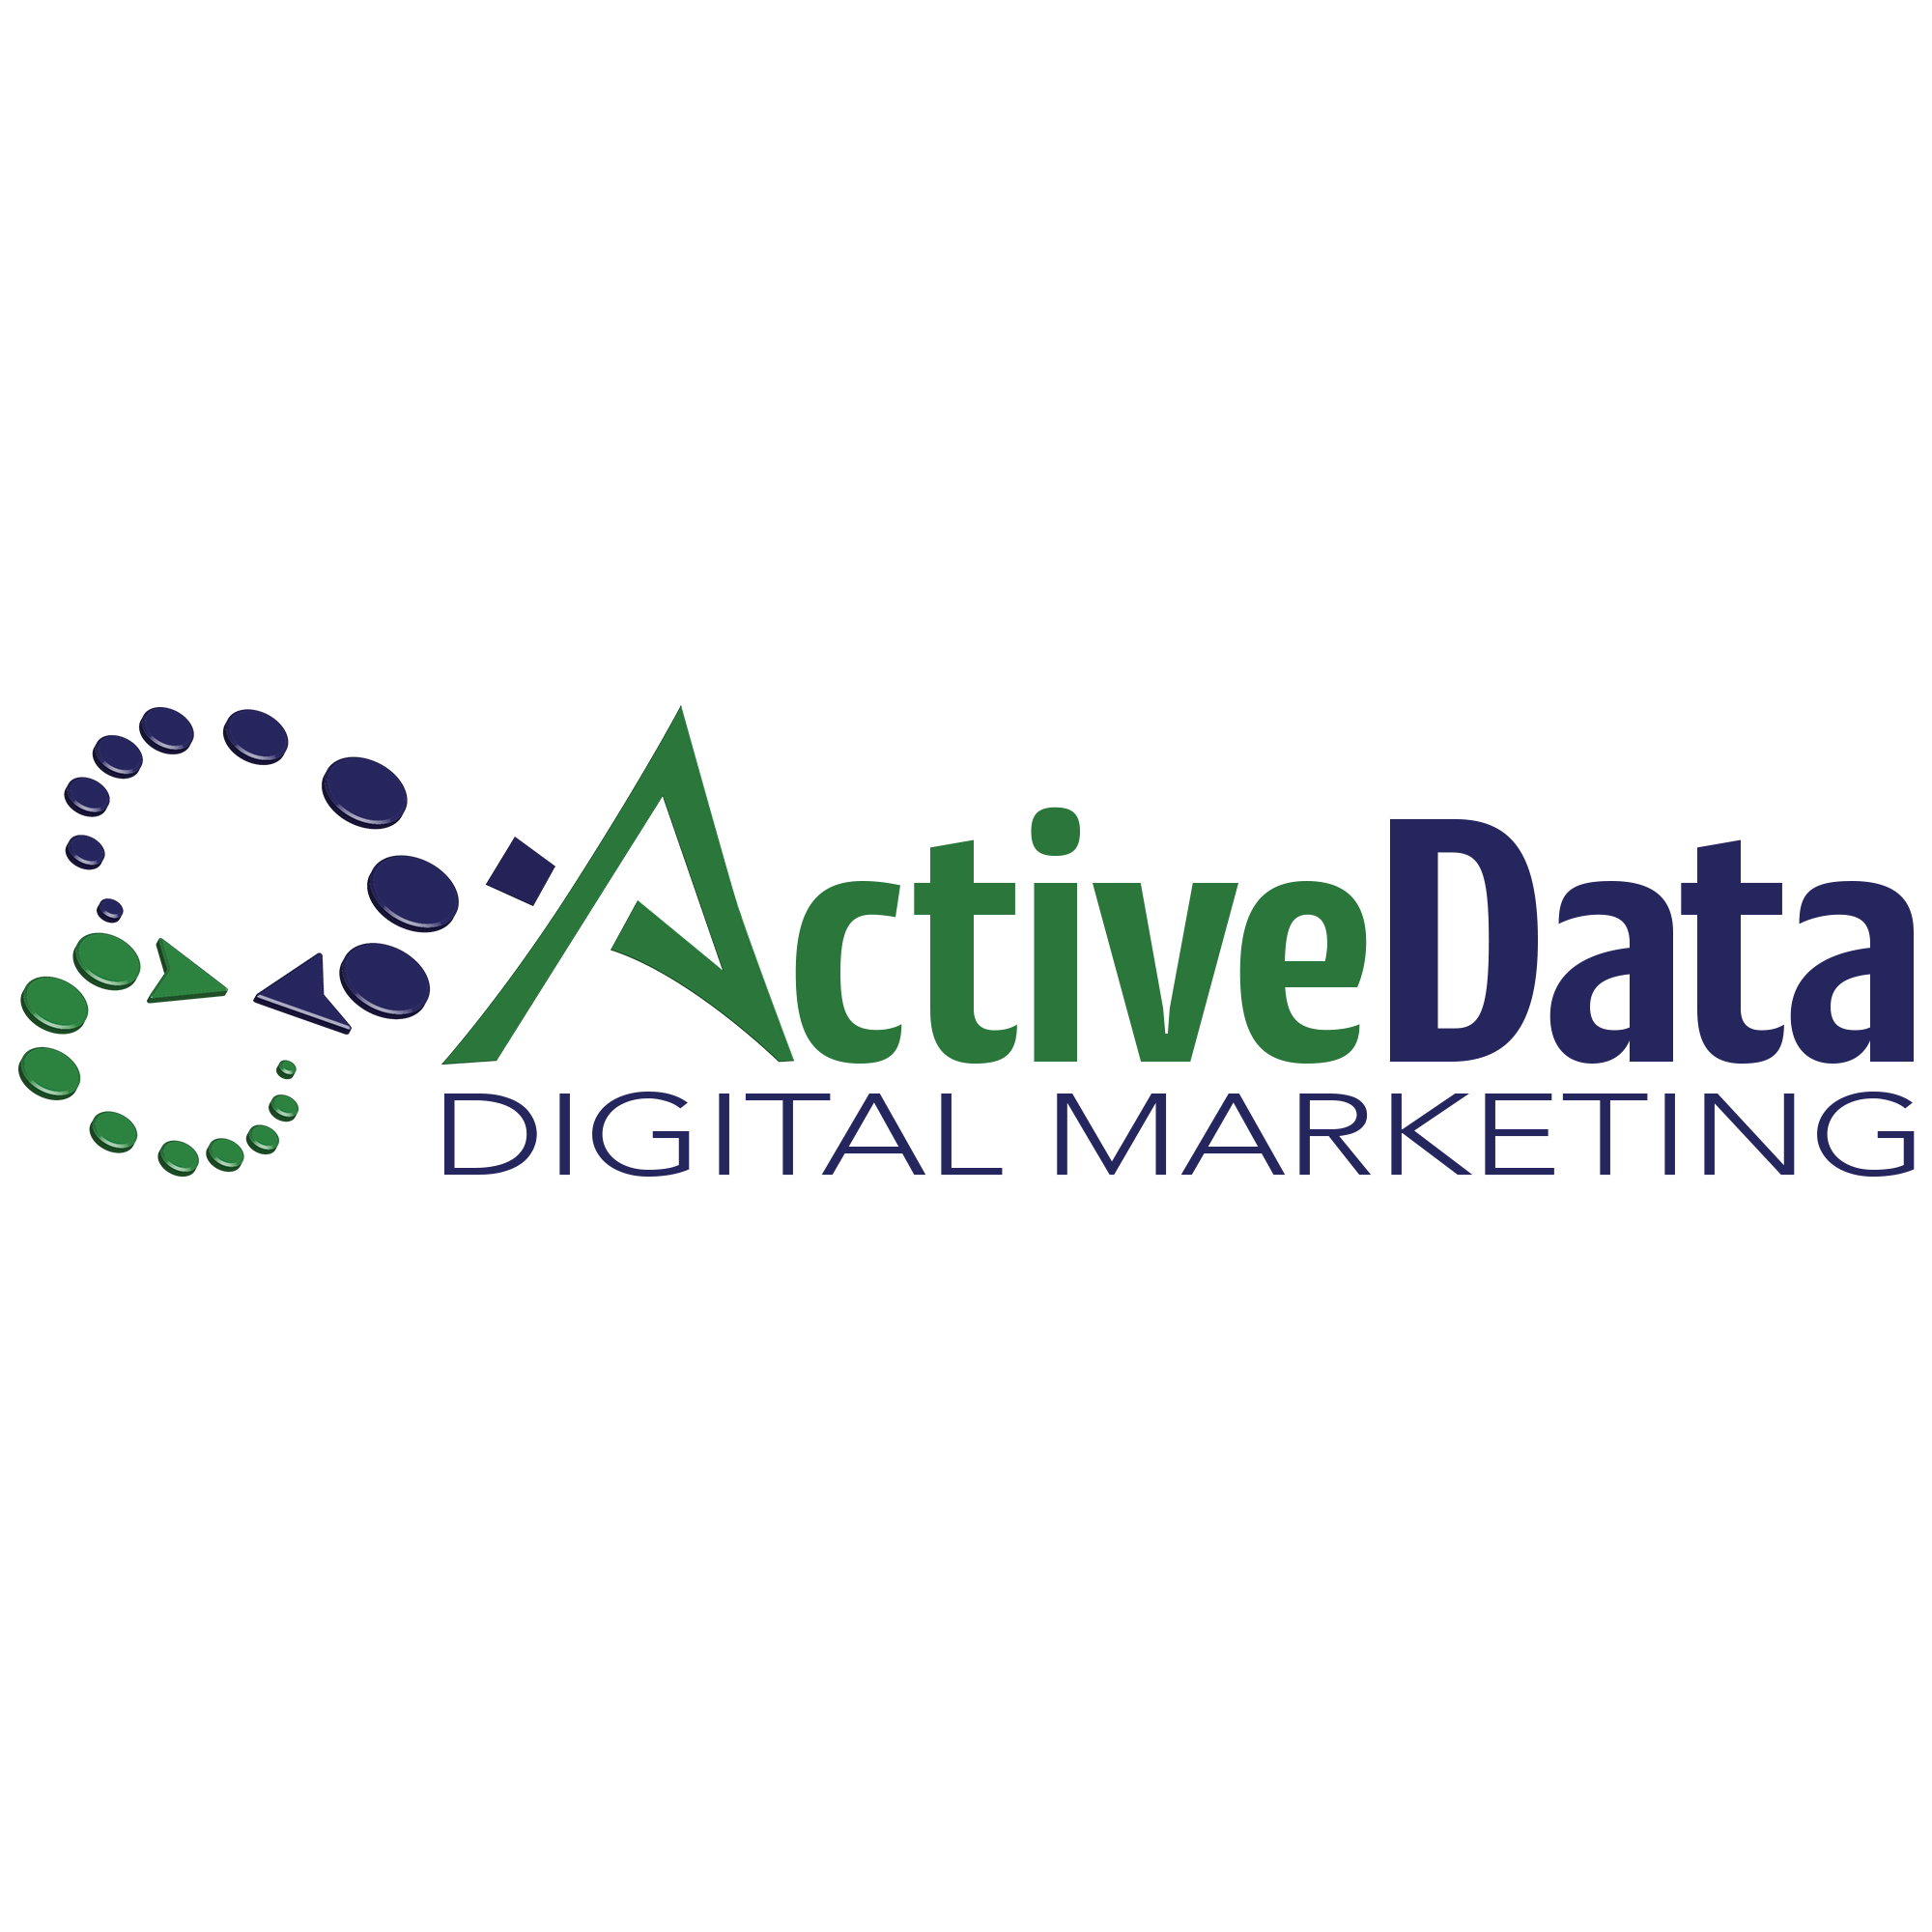 ActiveData Digital Marketing